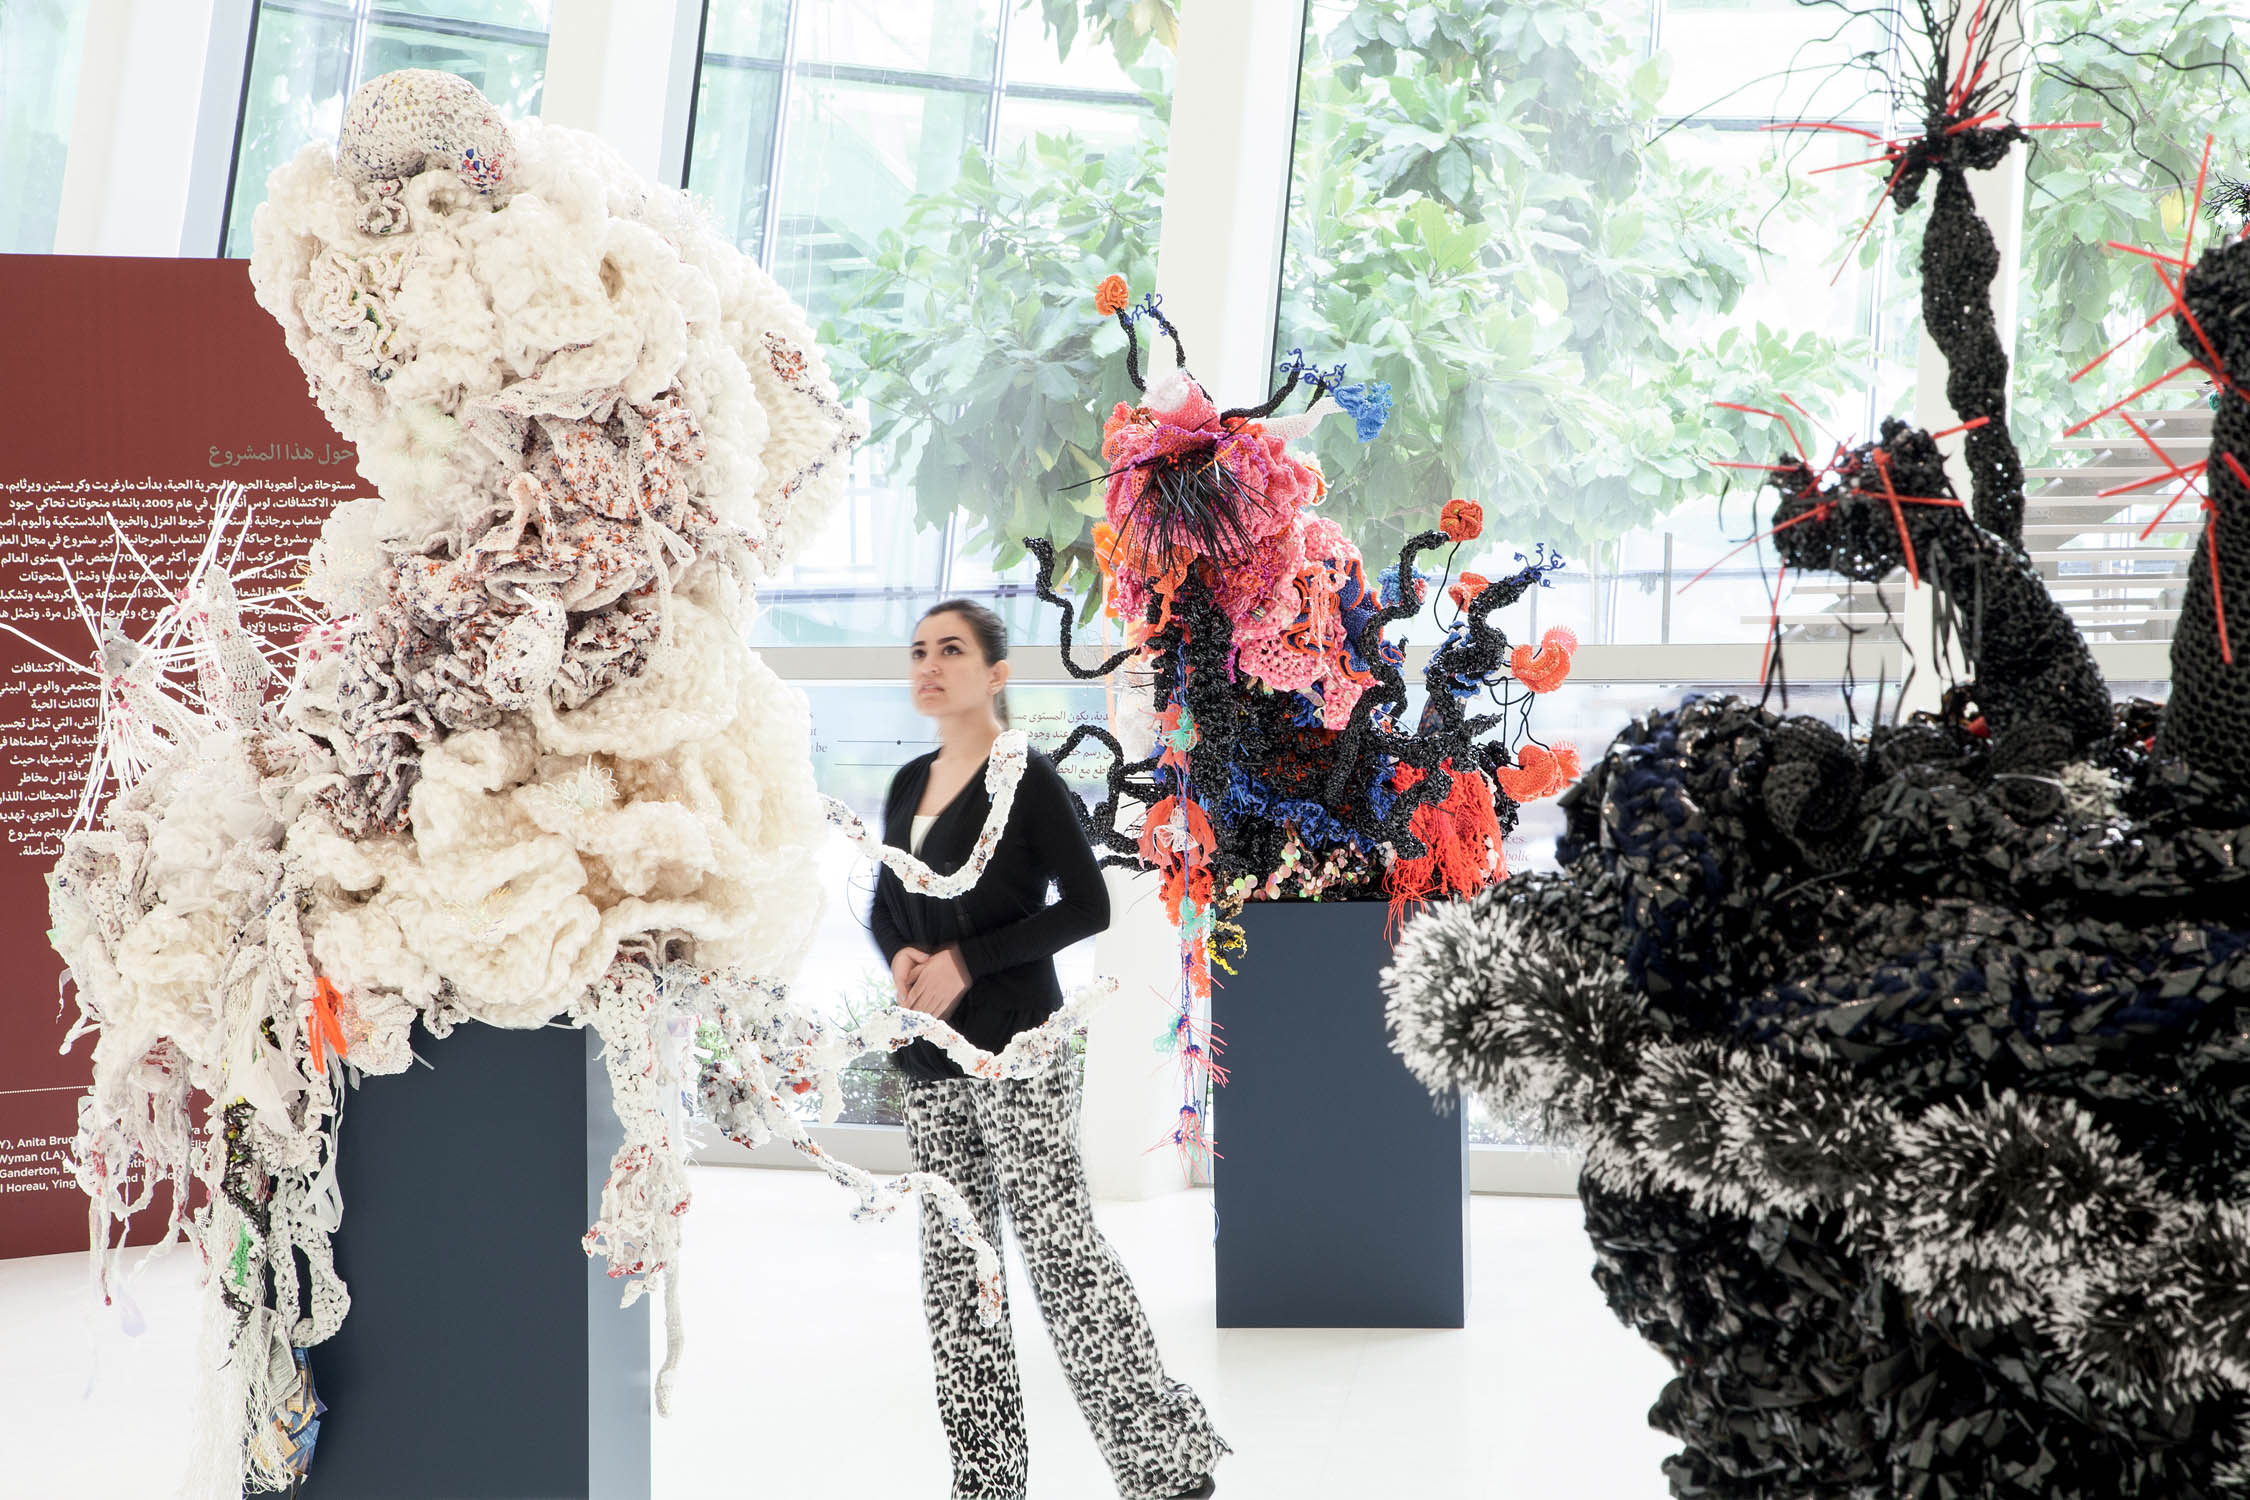 """Coral Forest"" sculptures made from plastic trash bags and videotape, from the ""Crochet Coral Reef"" project by Christine and Margaret Wertheim and the Institute For Figuring. At New York University Abu Dhabi, 2014."